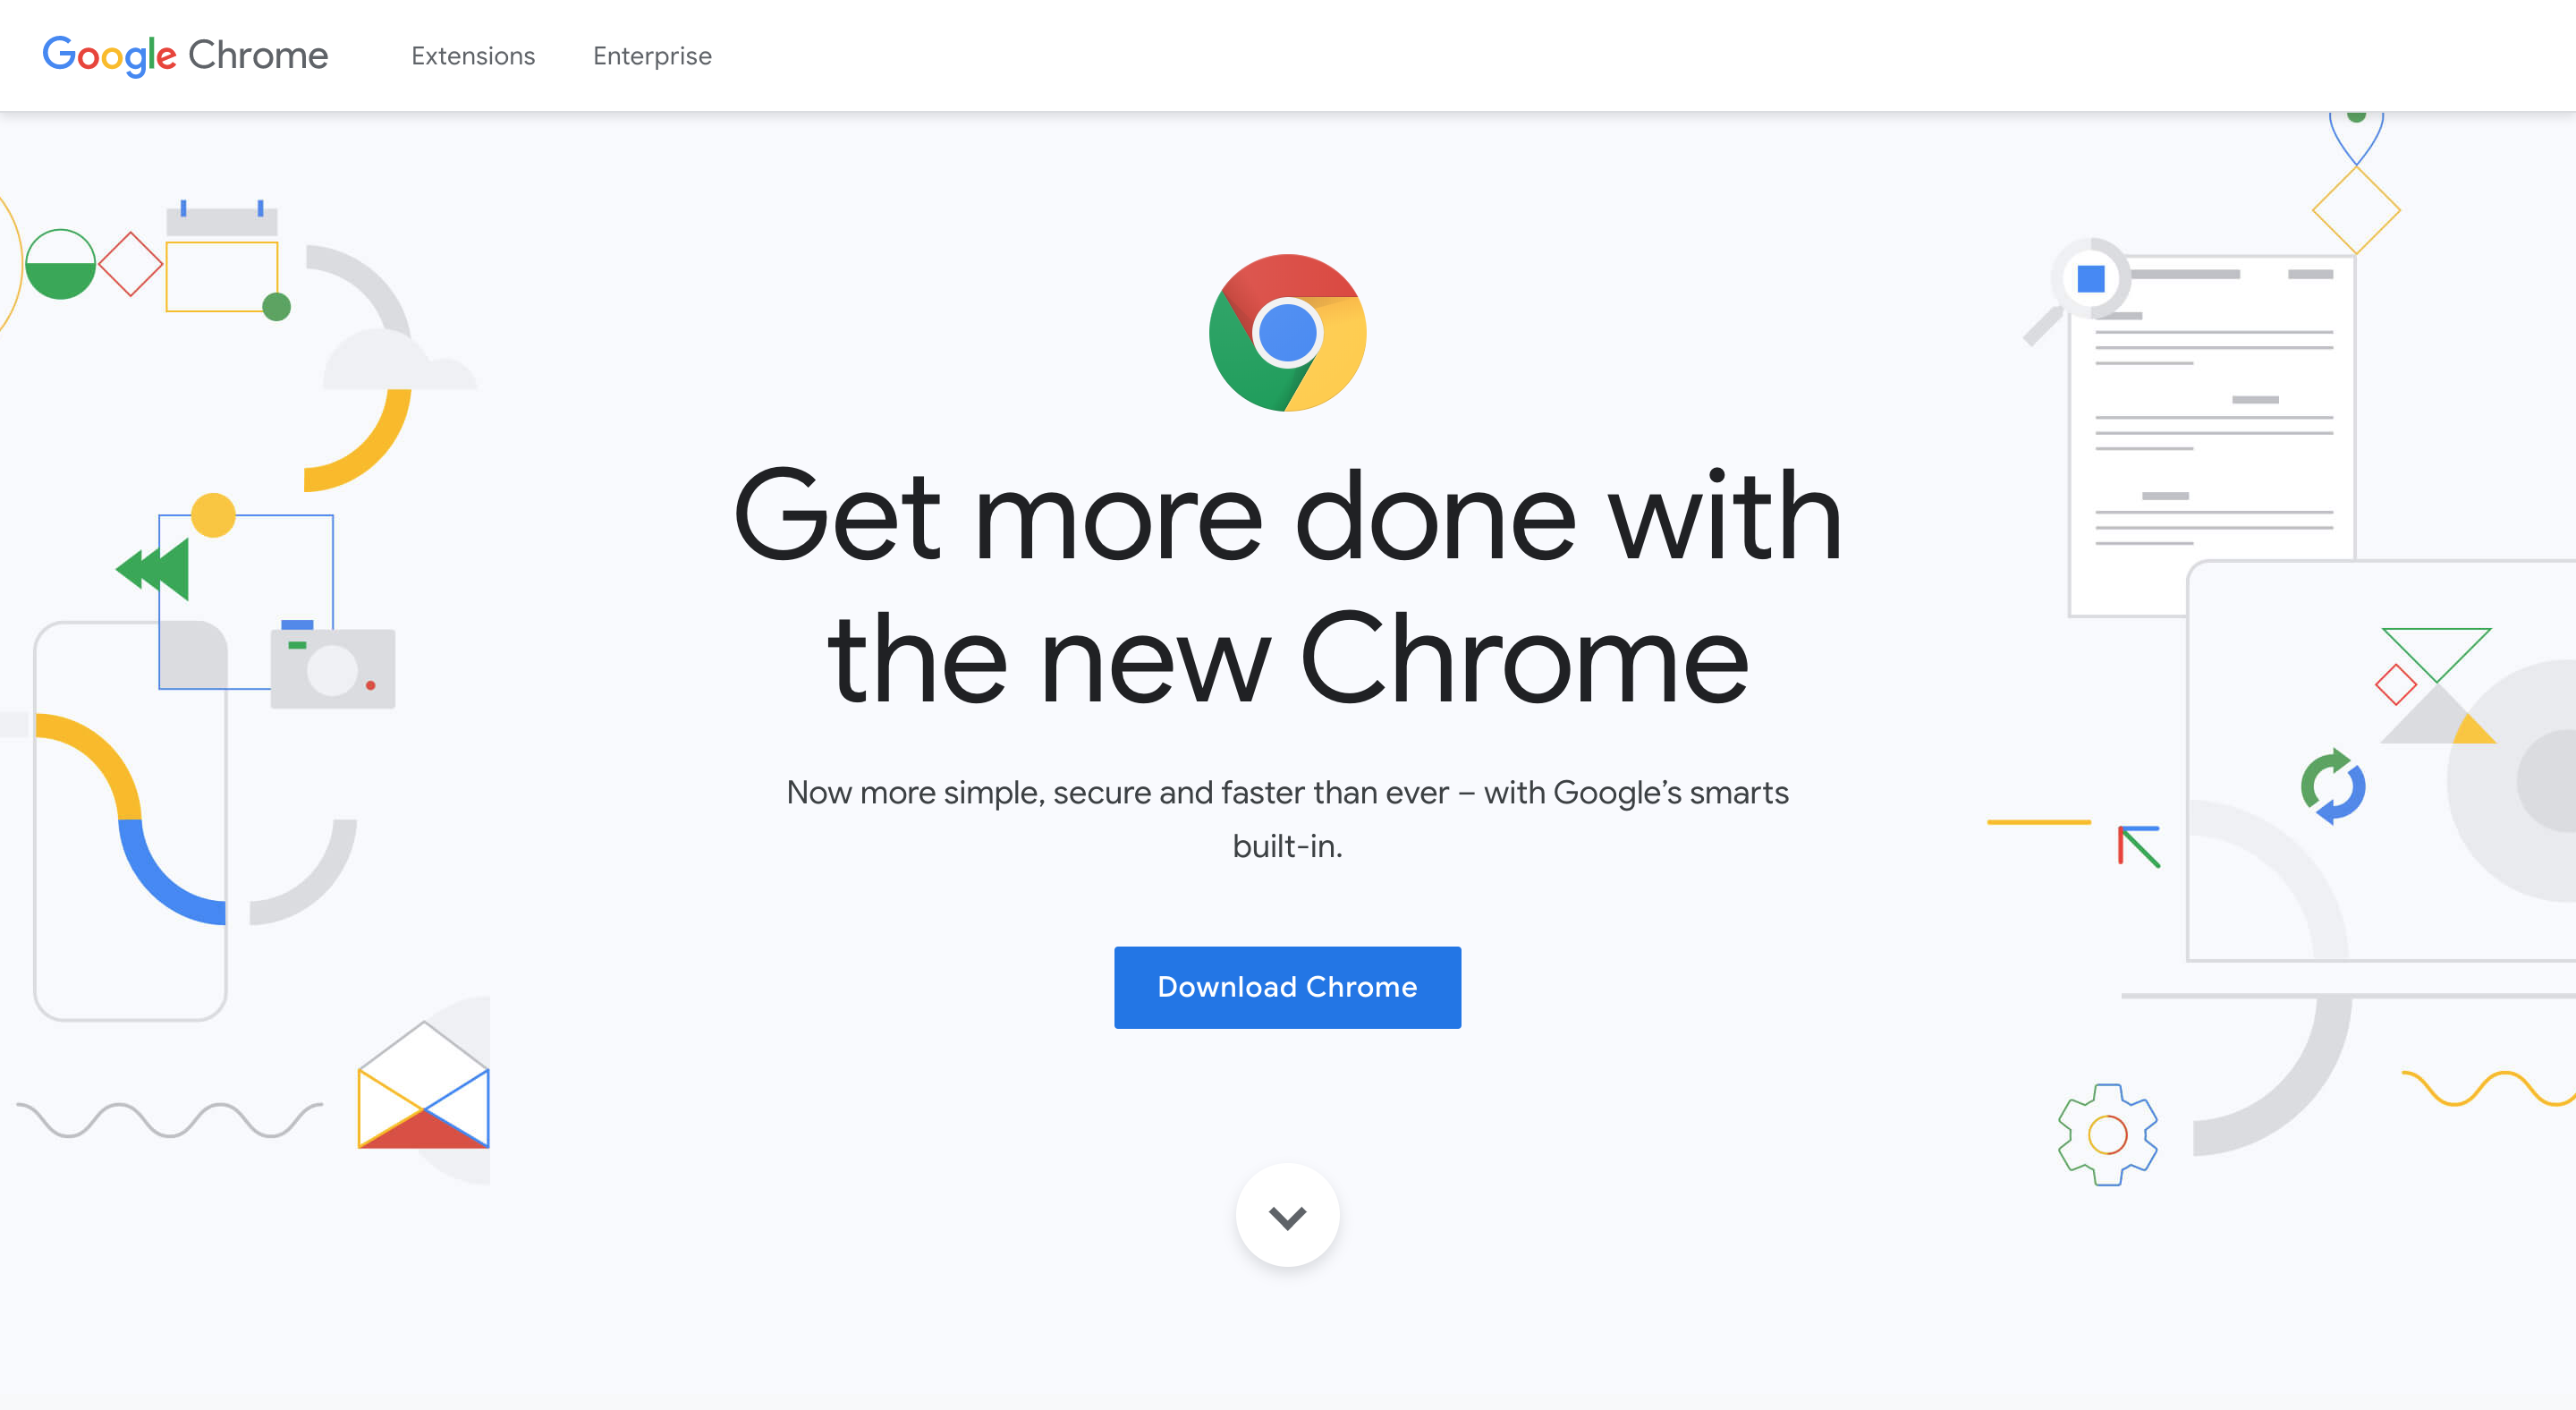 Ny Chrome-browser har dark mode og nemmere navigation